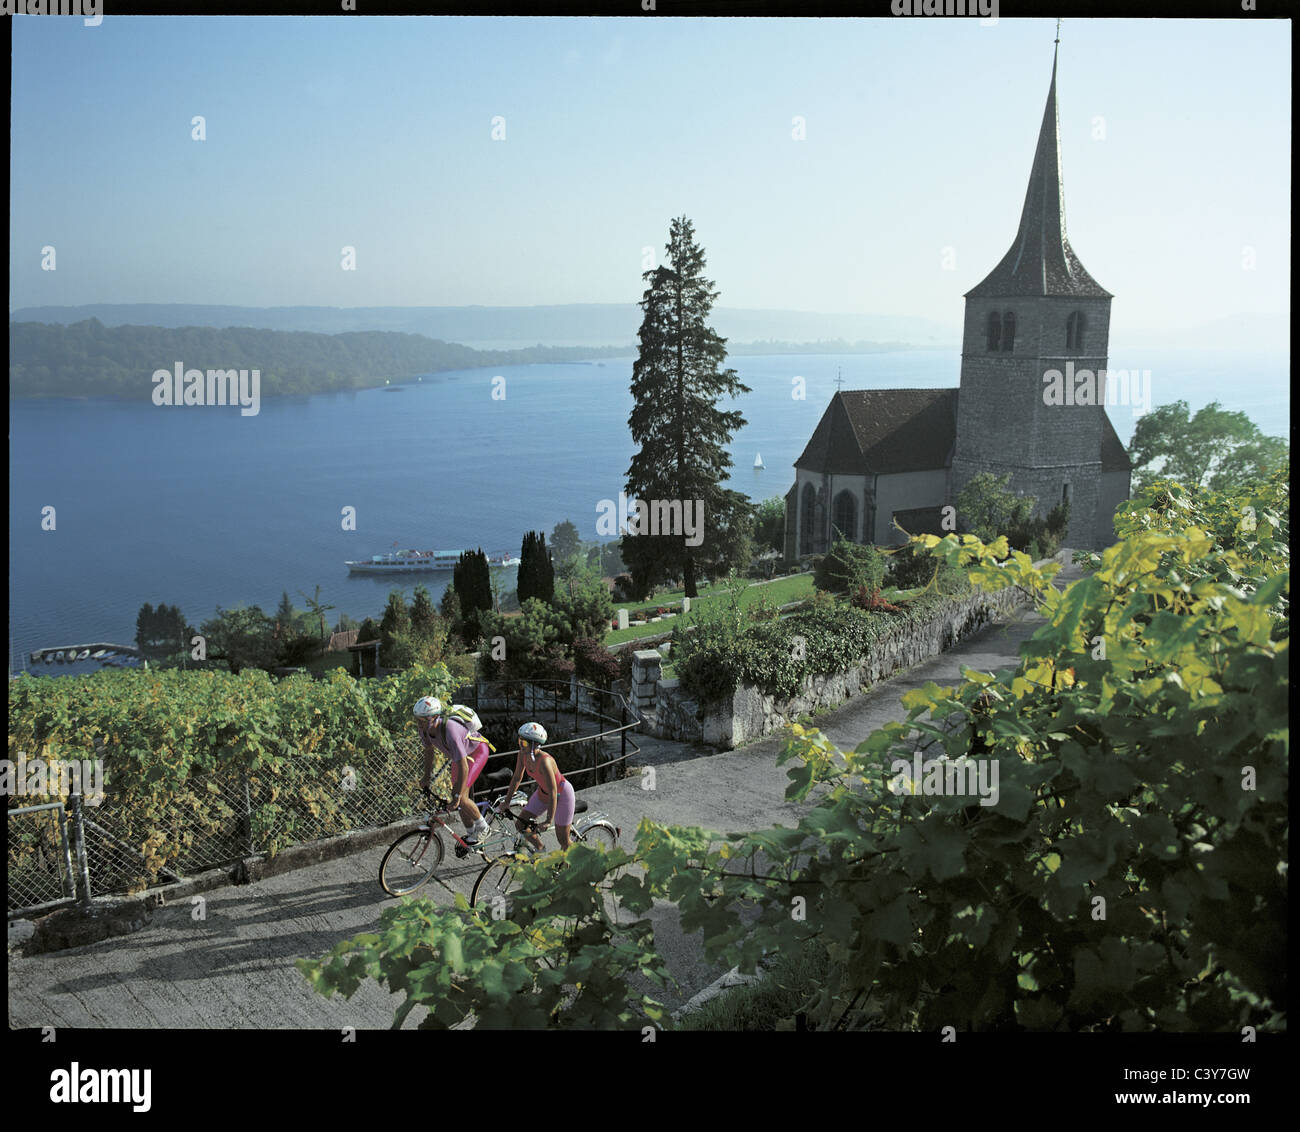 Ligerz, church, vineyards, cyclists, Velofahrer, Velo, bicycle, bike, shoots, wine, Bielersee, lake, sea, scenery, - Stock Image